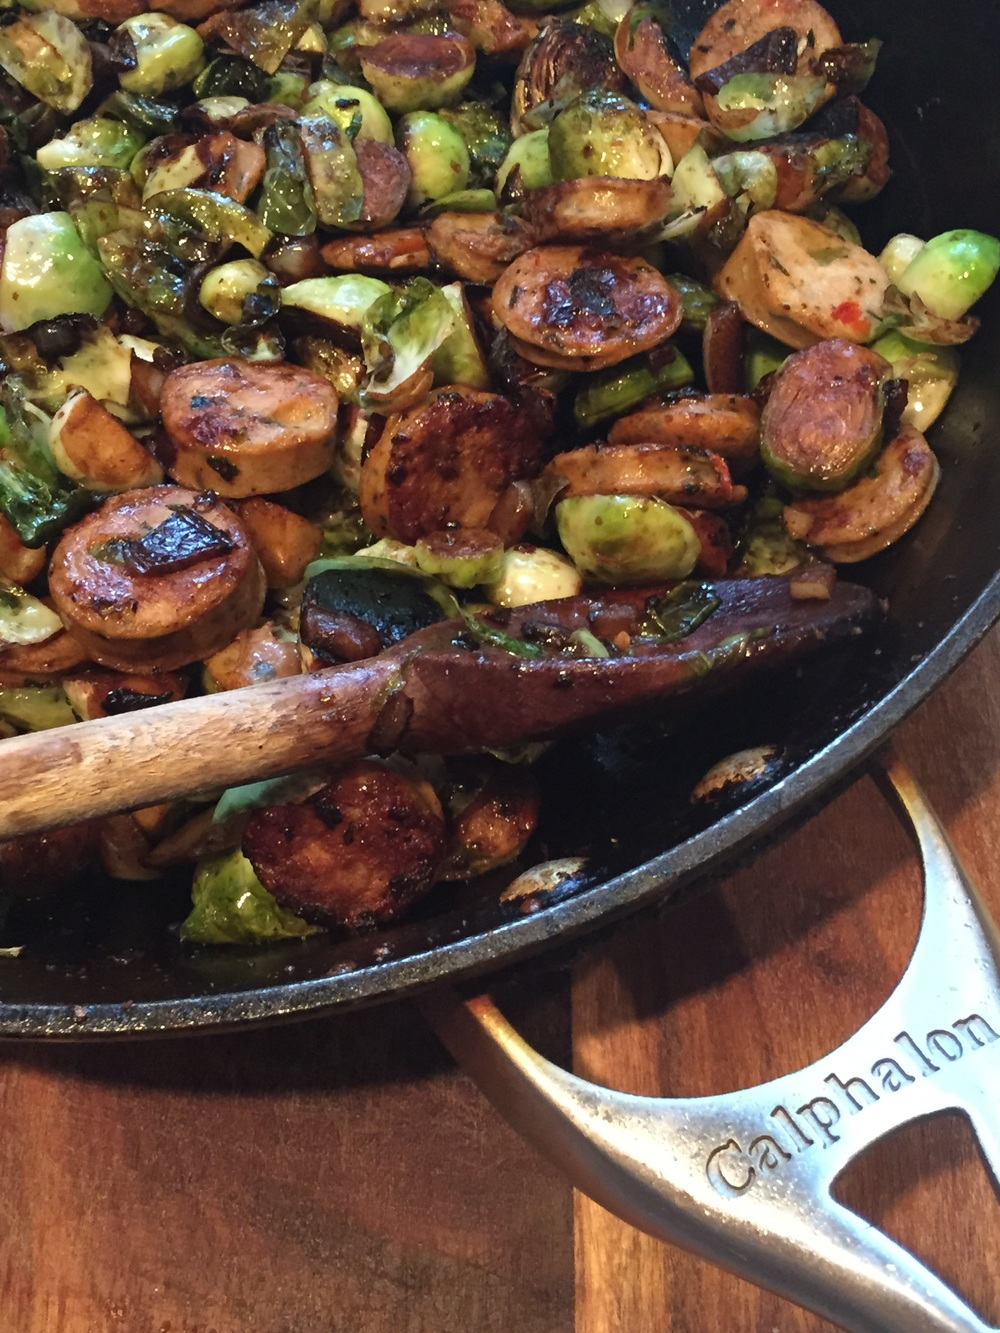 Sausages and Brussels Sprouts in Balsamic Vinegar. Image via The Entertaining House